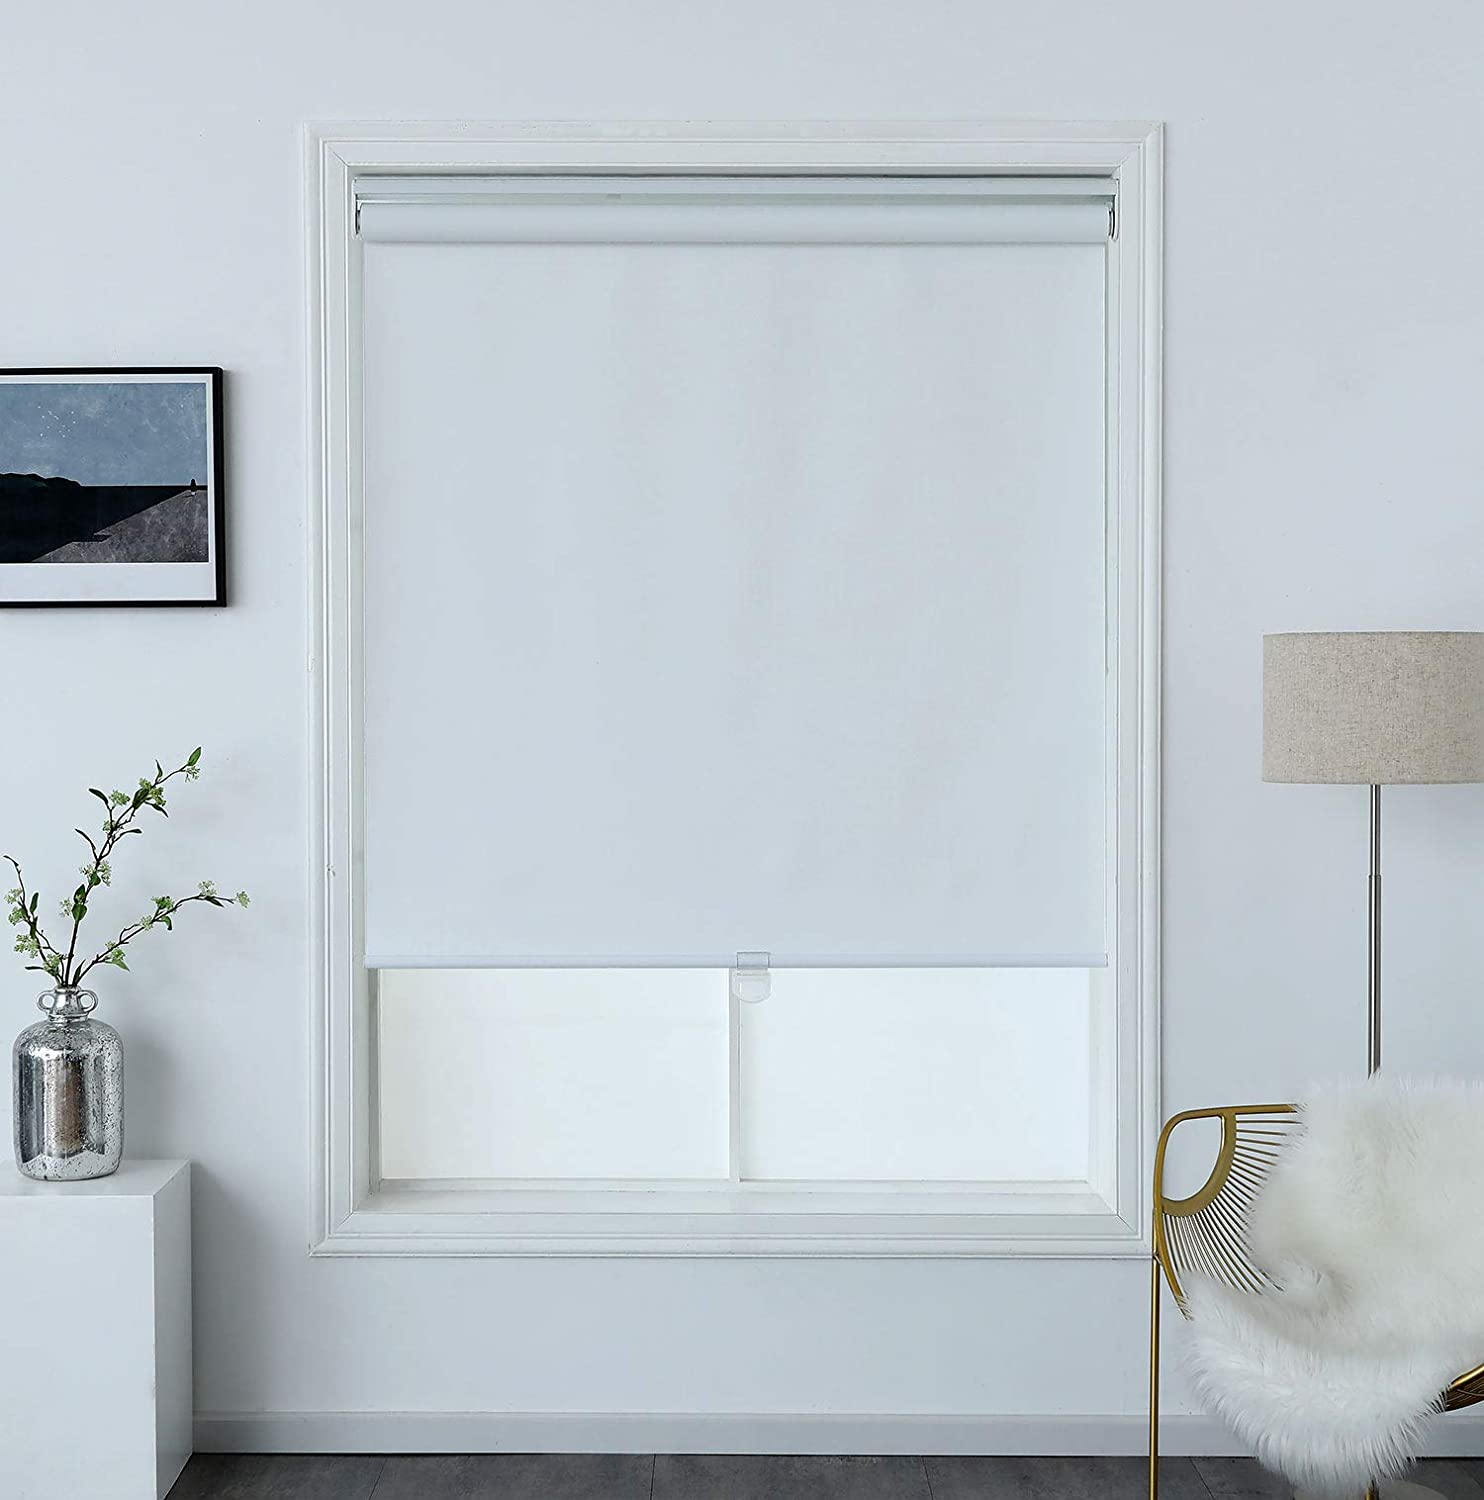 100% Blackout Textured 2021 spring and summer new Roller Shade In stock Thermal Proof Water Insulat